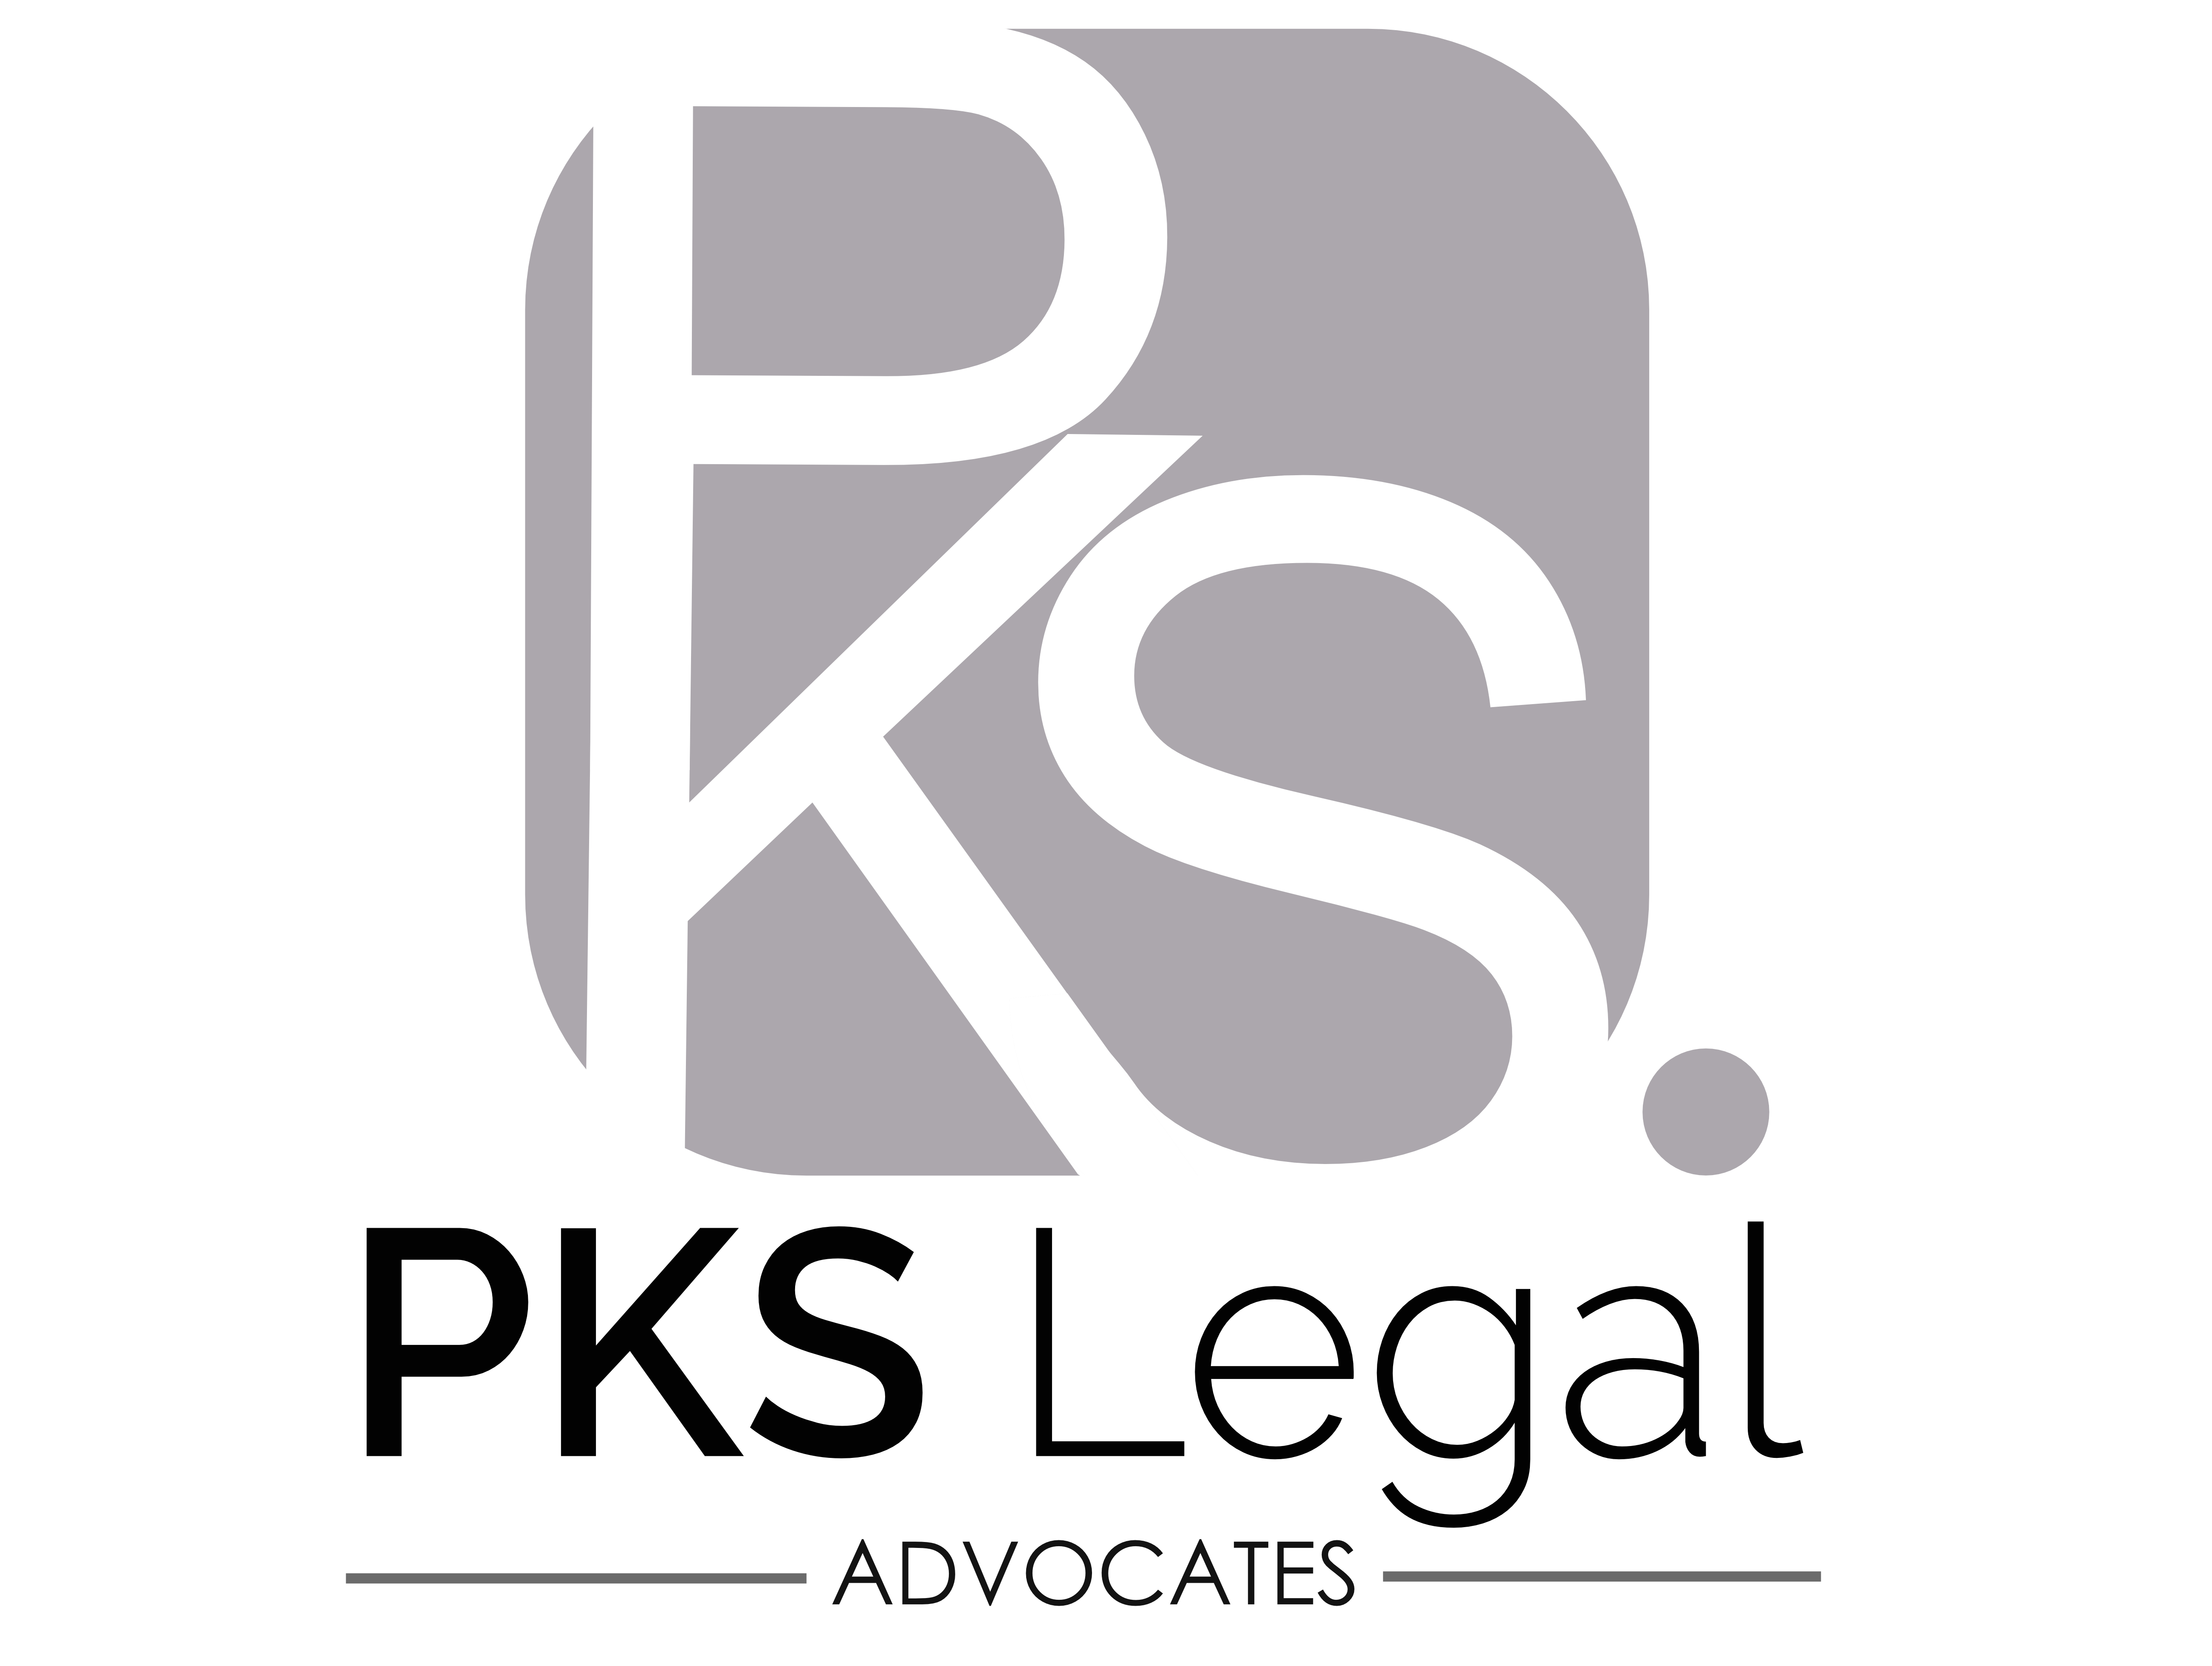 Internship Experience @ PKS Legal, Delhi: Client Meetings, Courts Visits, Case Law Research and Drafting Work